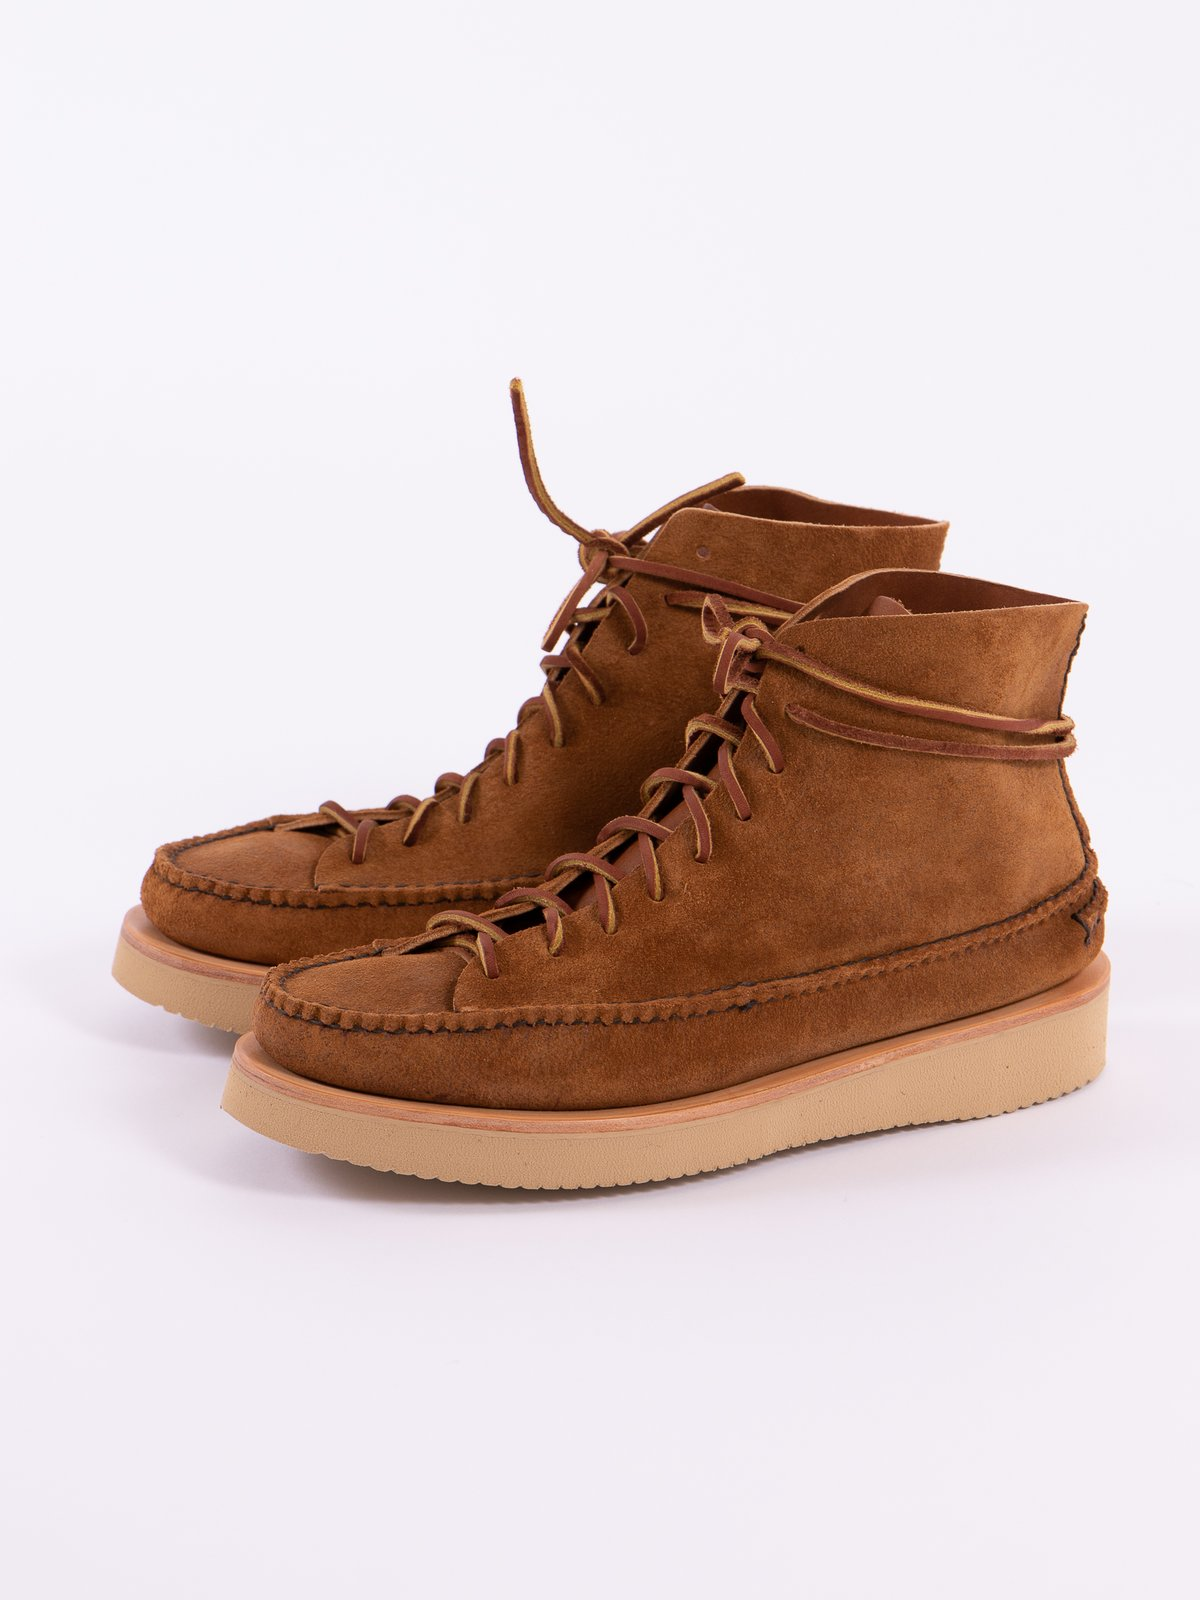 Golden Brown All Handsewn Sneaker Moc High Boot - Image 3